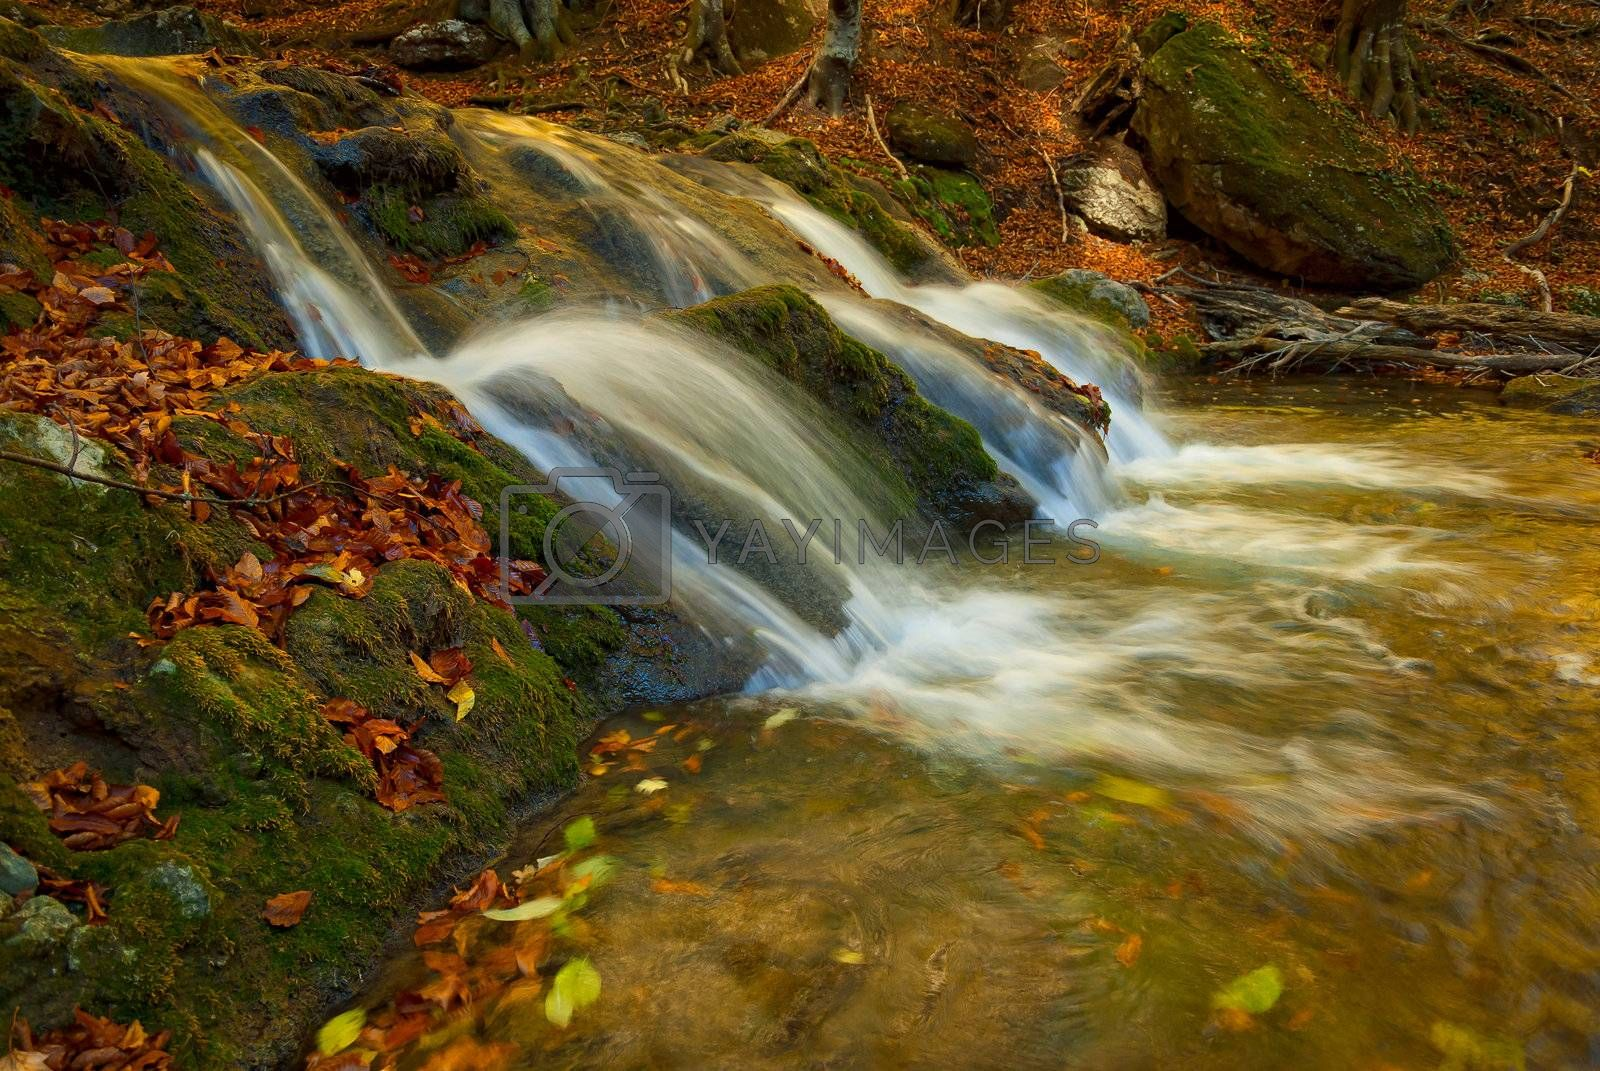 A small waterfall in mountains is surrounded by moss and fallen autumn maple leaves